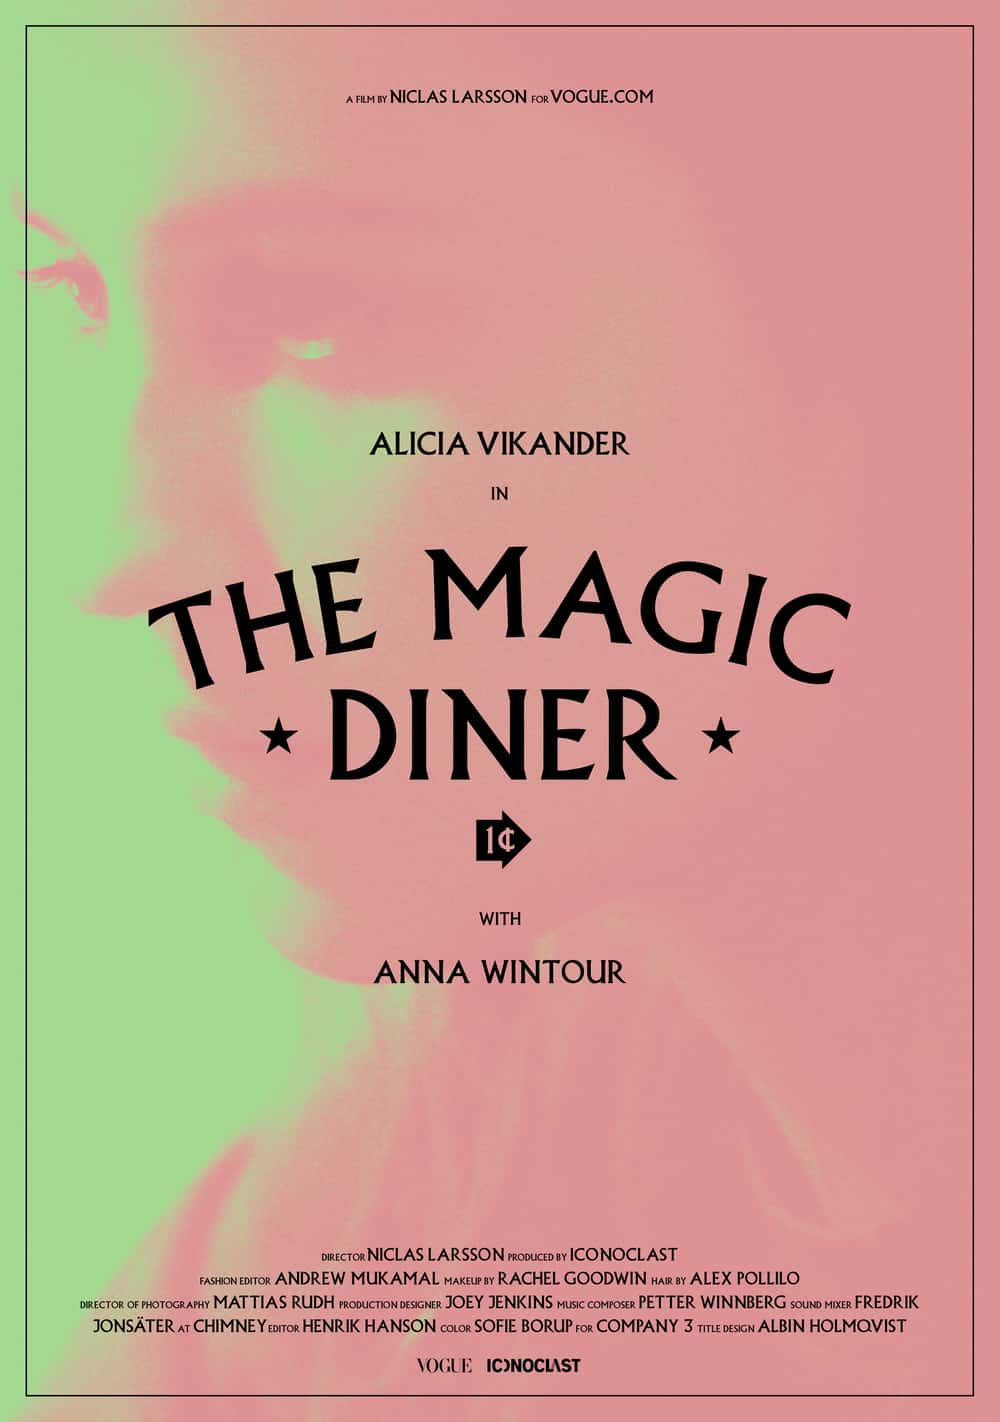 The Magic Diner, 2015